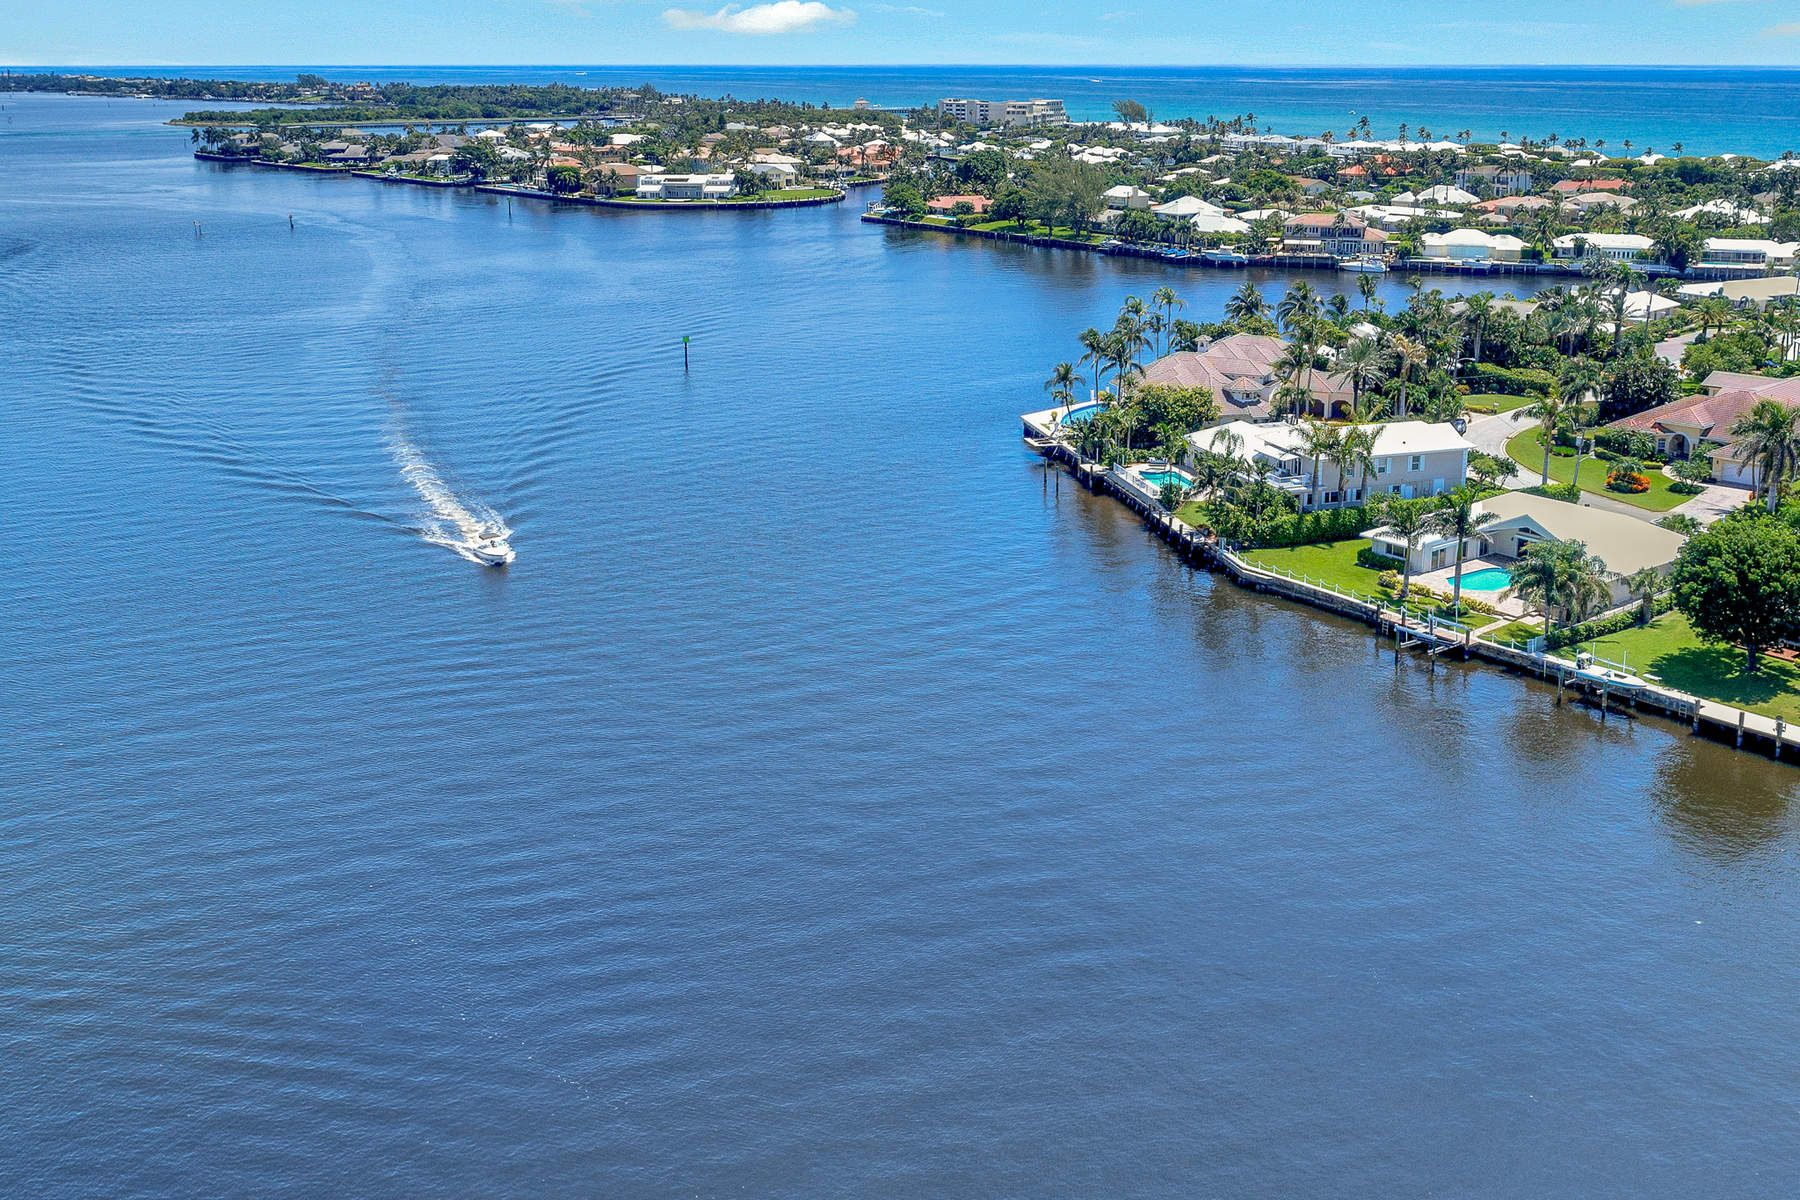 Single Family Homes for Sale at Spectacular Waterfront Ocean Ridge 52 Spanish River Dr Ocean Ridge, Florida 33435 United States